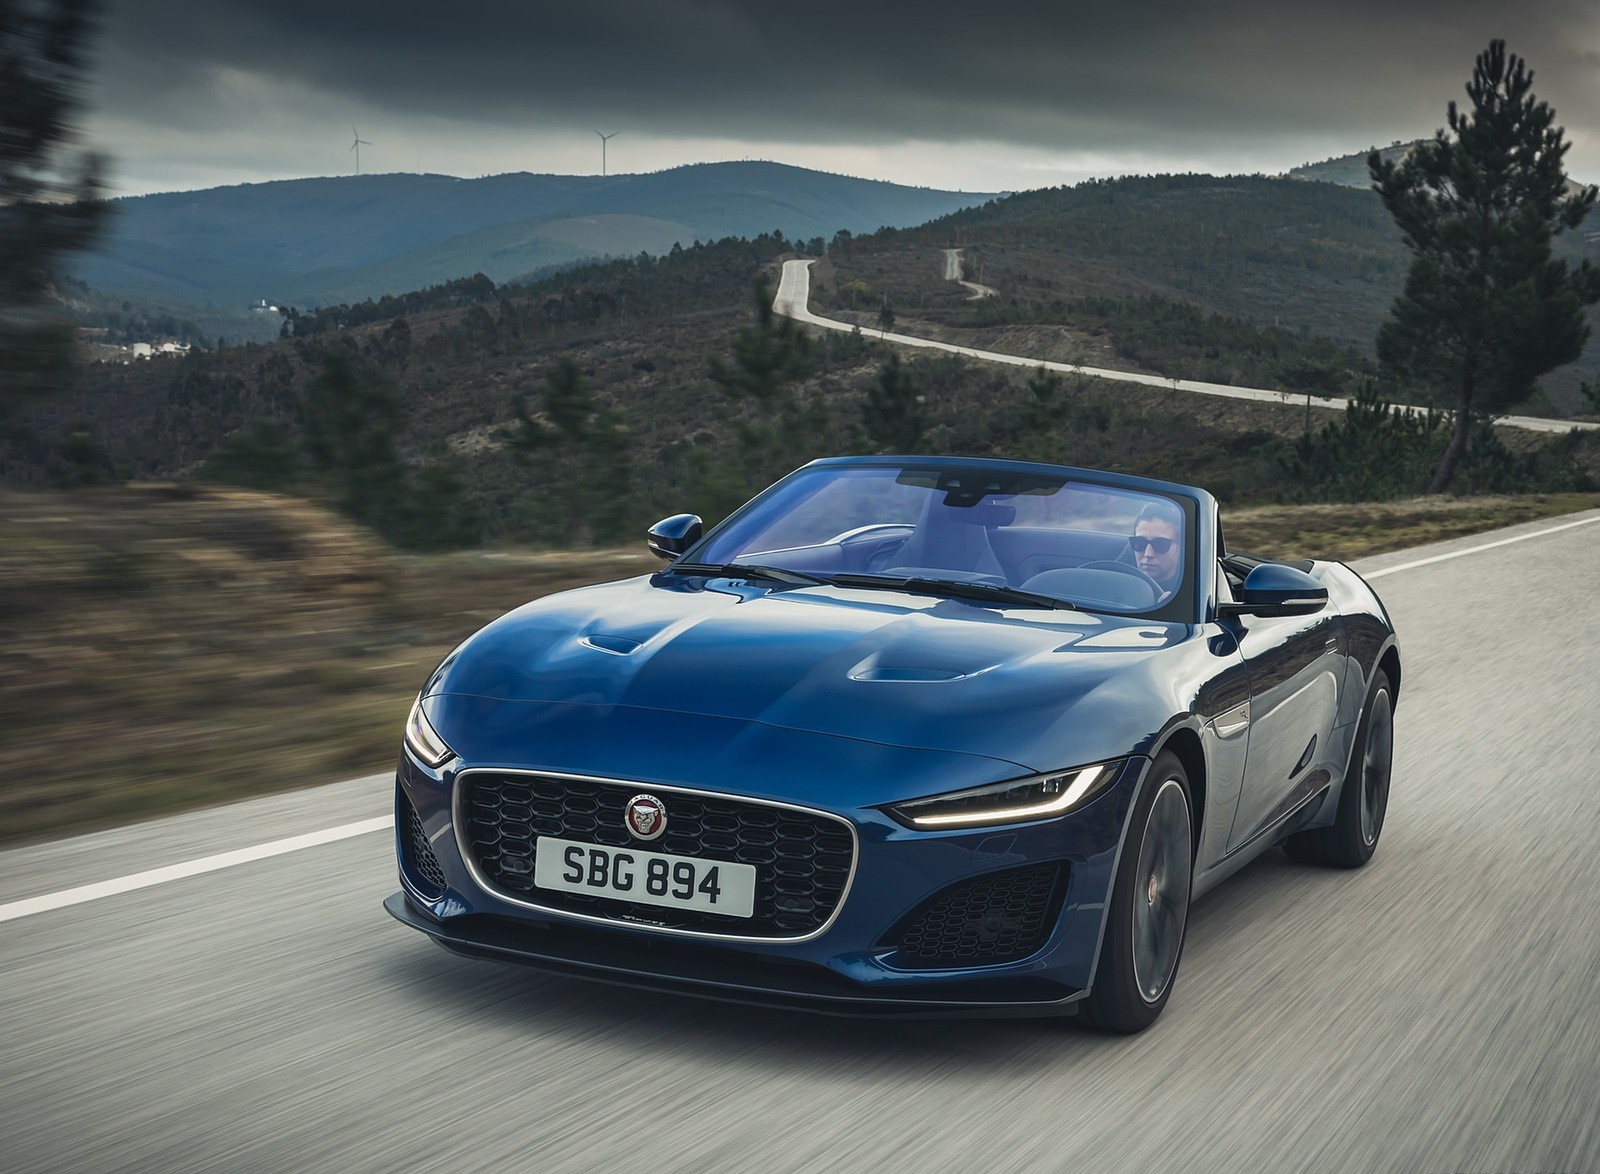 2021 Jaguar F-TYPE P300 Convertible RWD (Color: Bluefire) Front Three-Quarter Wallpapers (5)